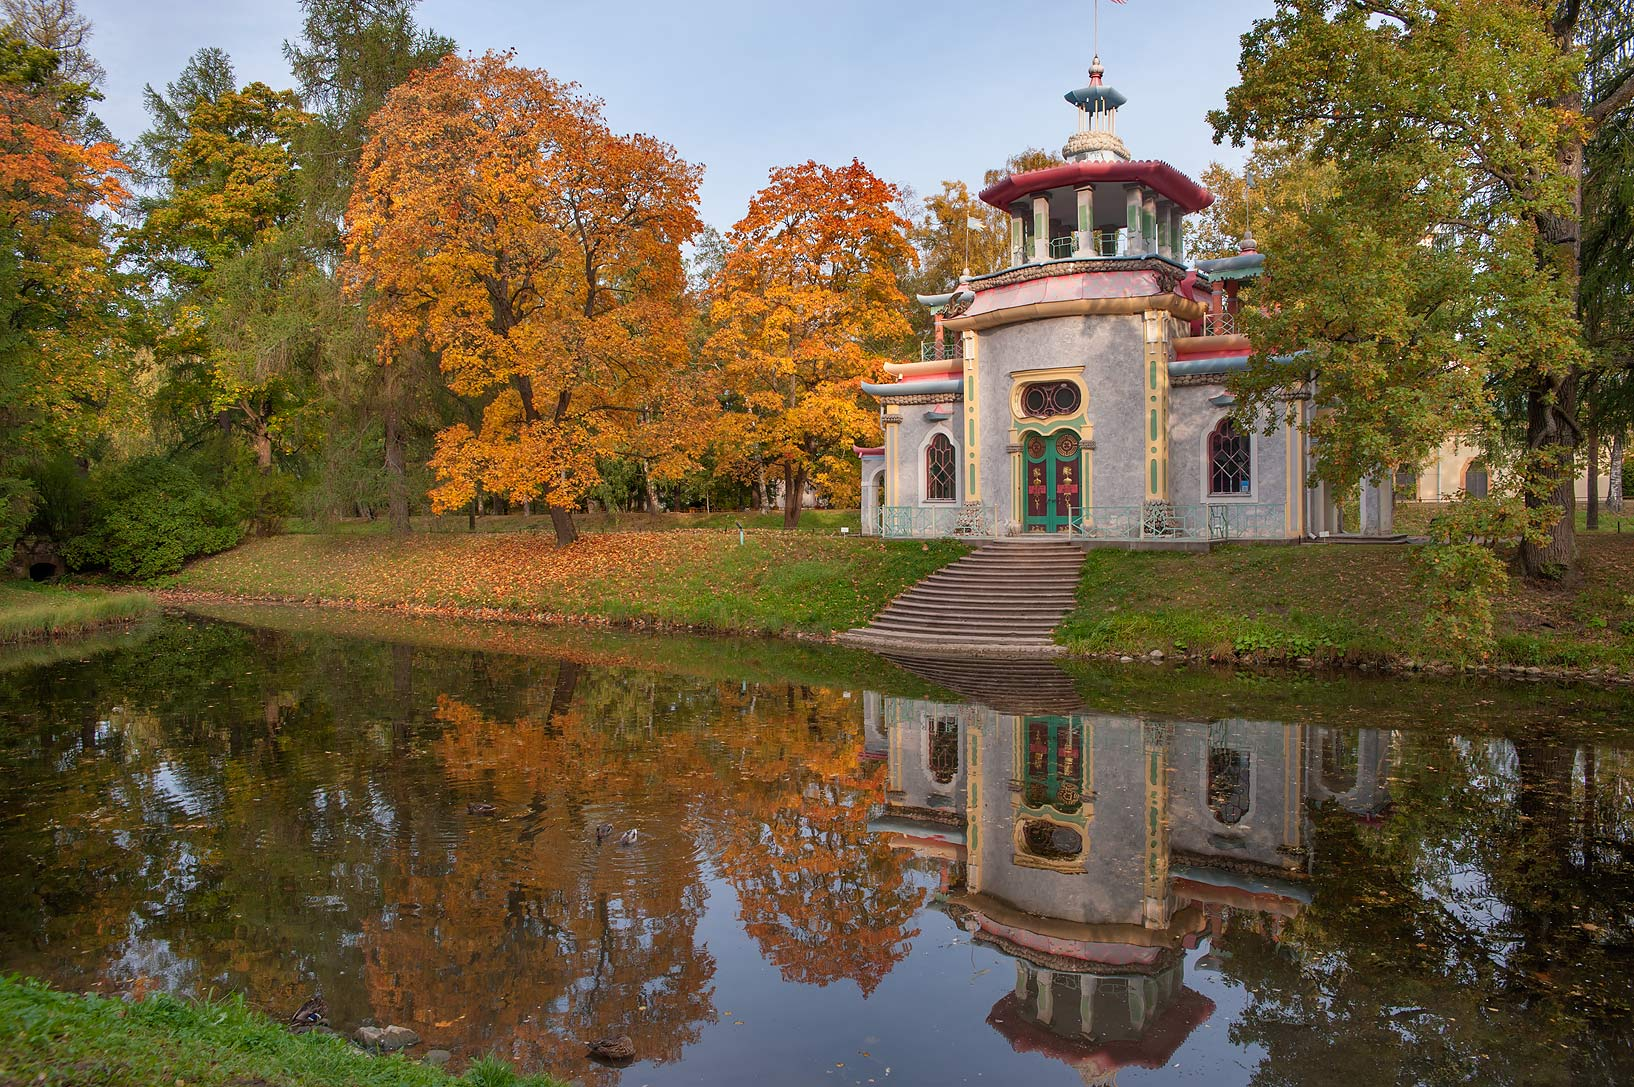 Creaking Summer House in Catherine Park. Pushkin...south from St.Petersburg, Russia